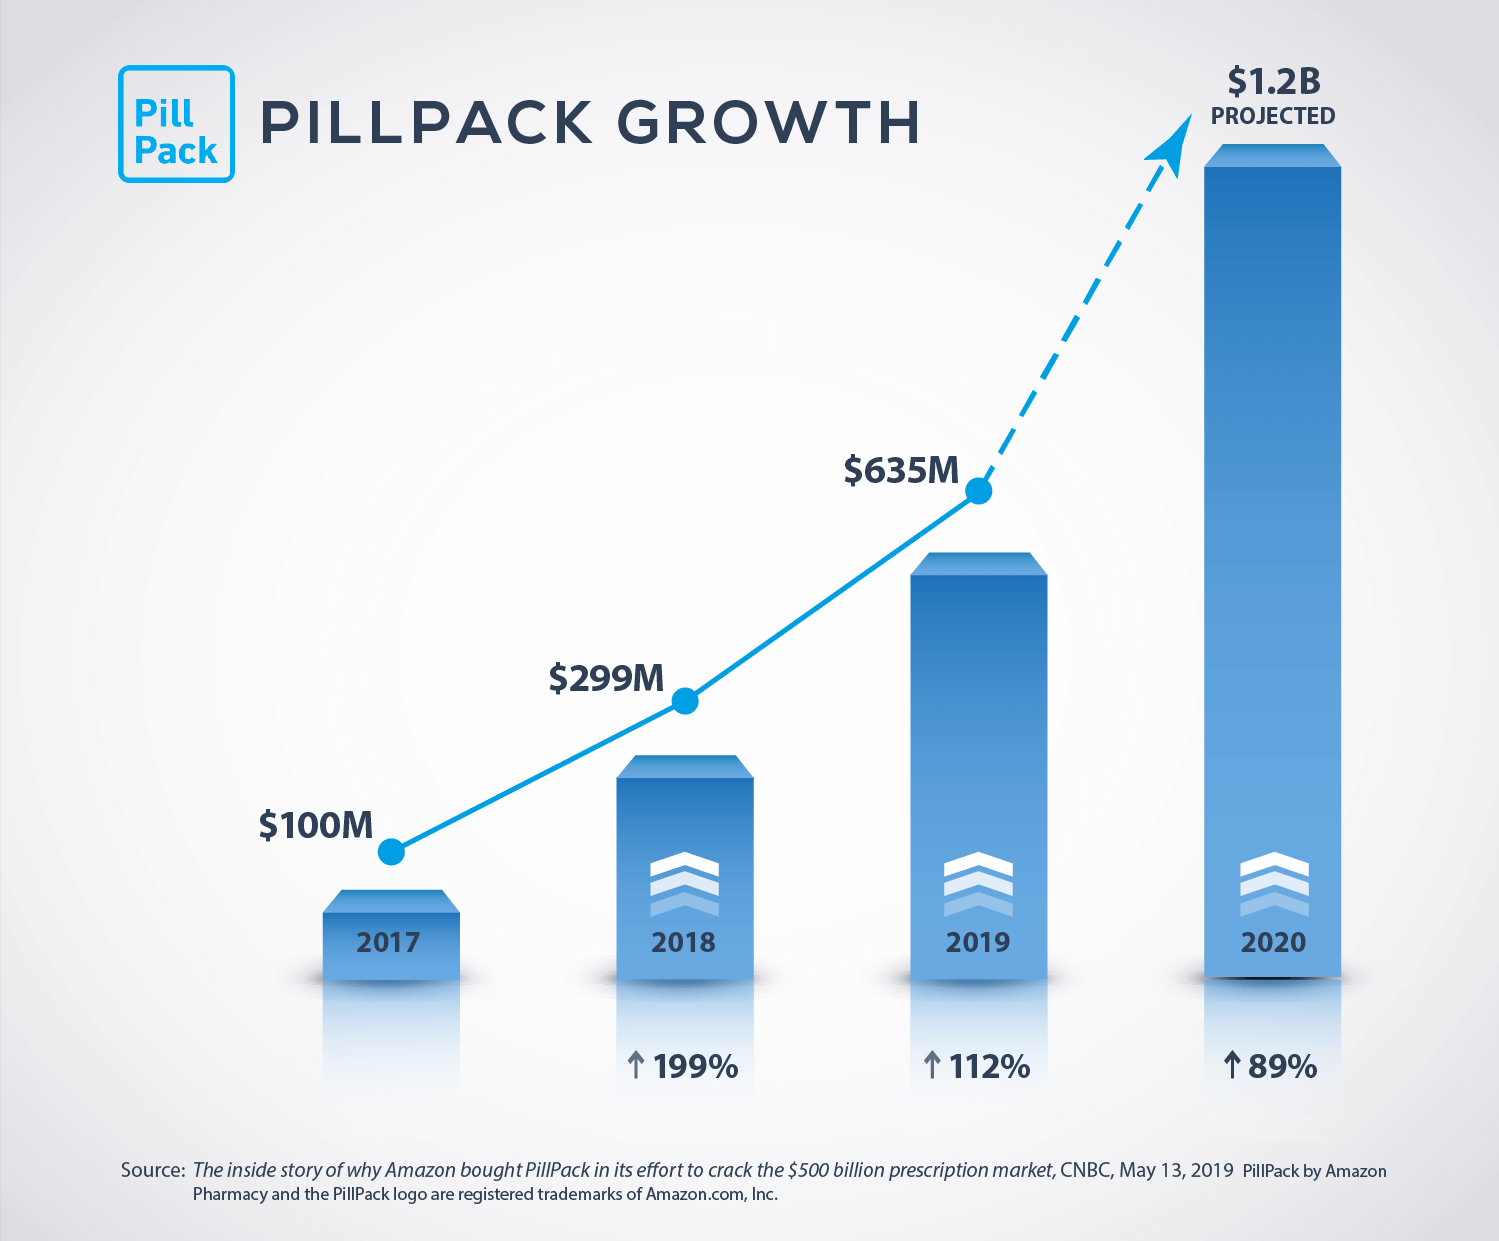 PillPack Growth